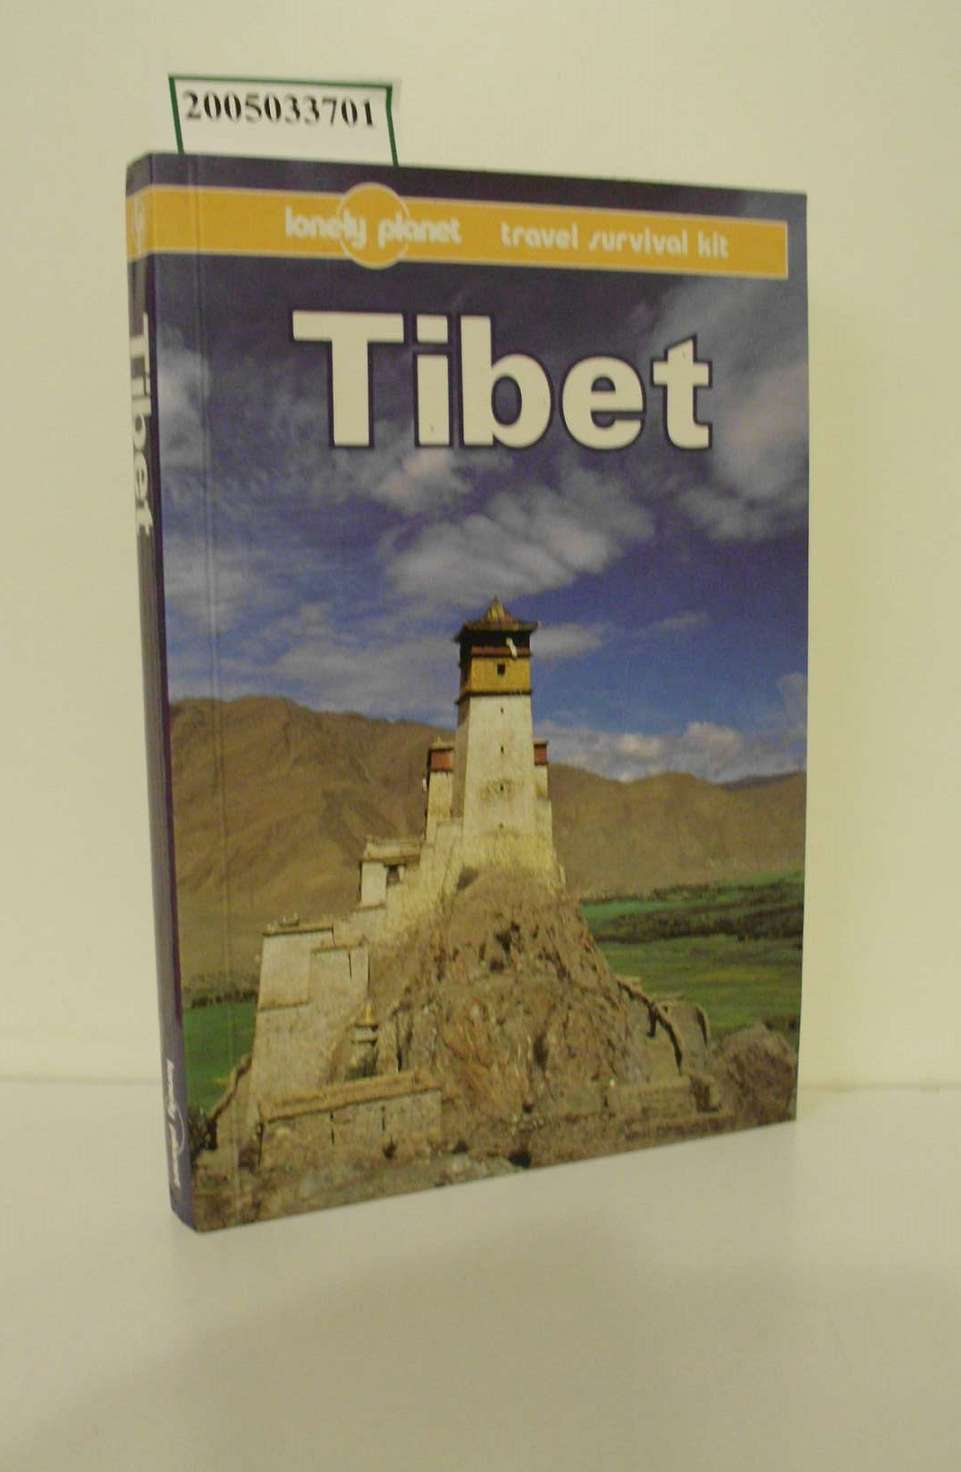 Tibet: a Lonely Planet travel survival kit Third Edition